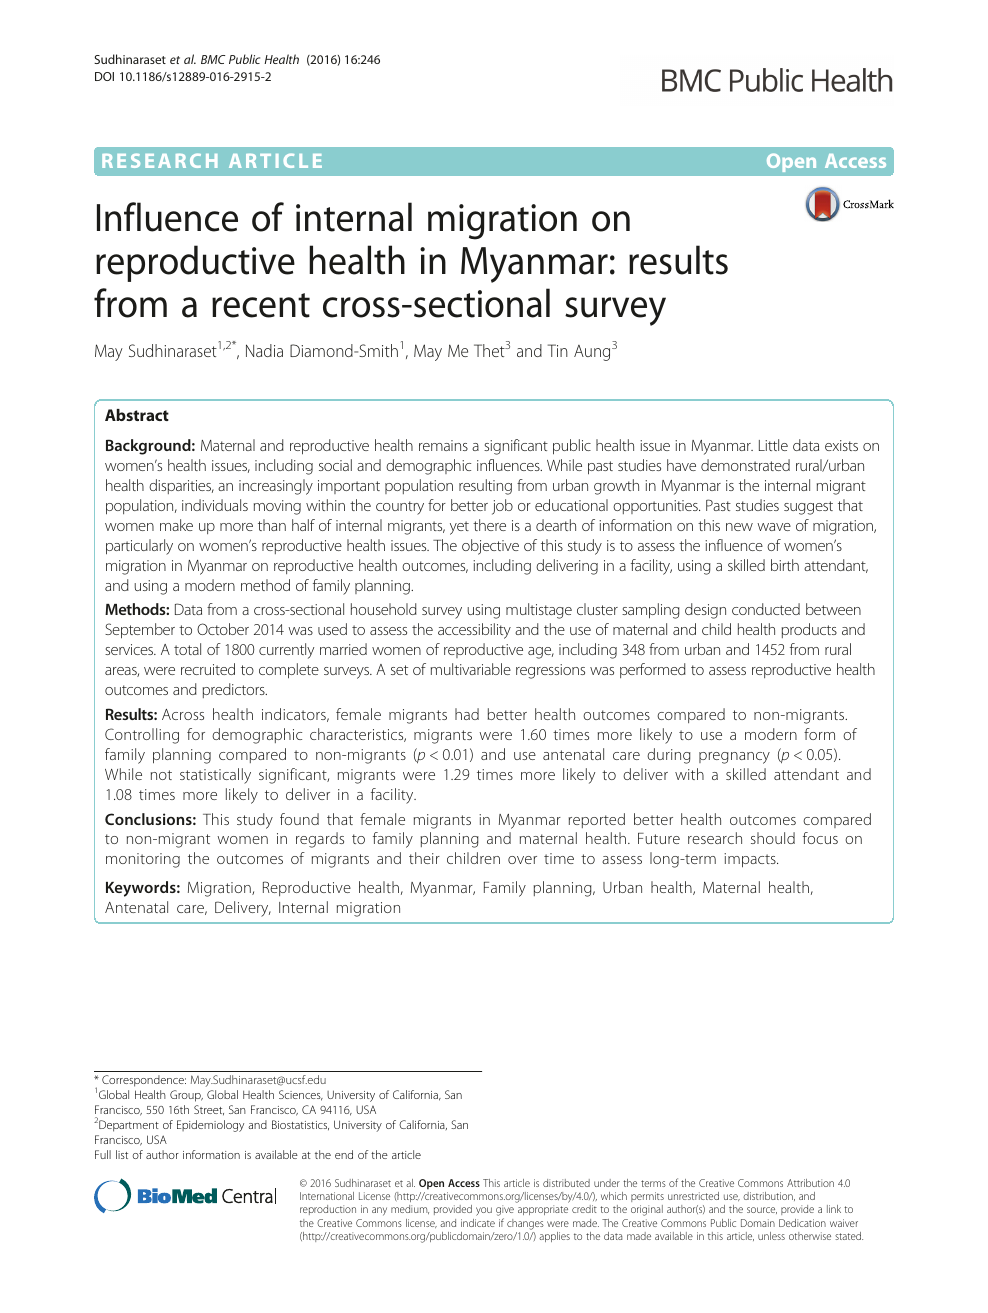 Influence of internal migration on reproductive health in